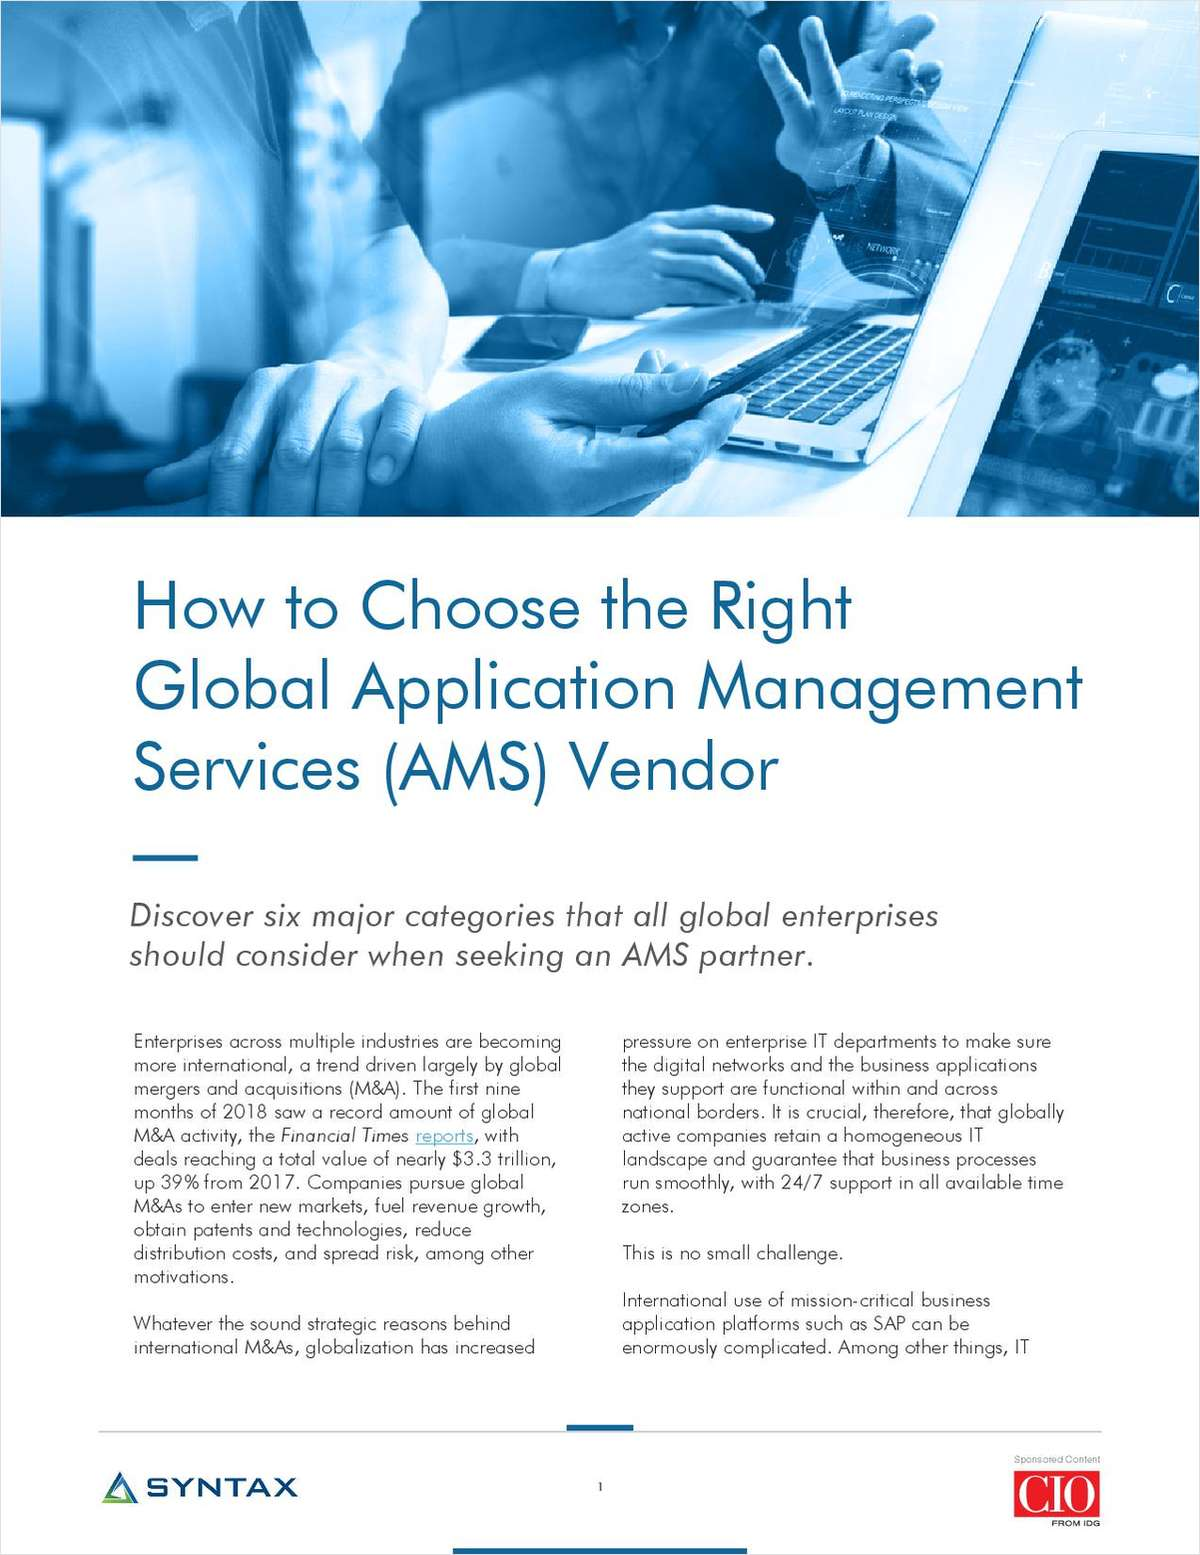 How to Choose the Right Global Application Management Services (AMS) Vendor